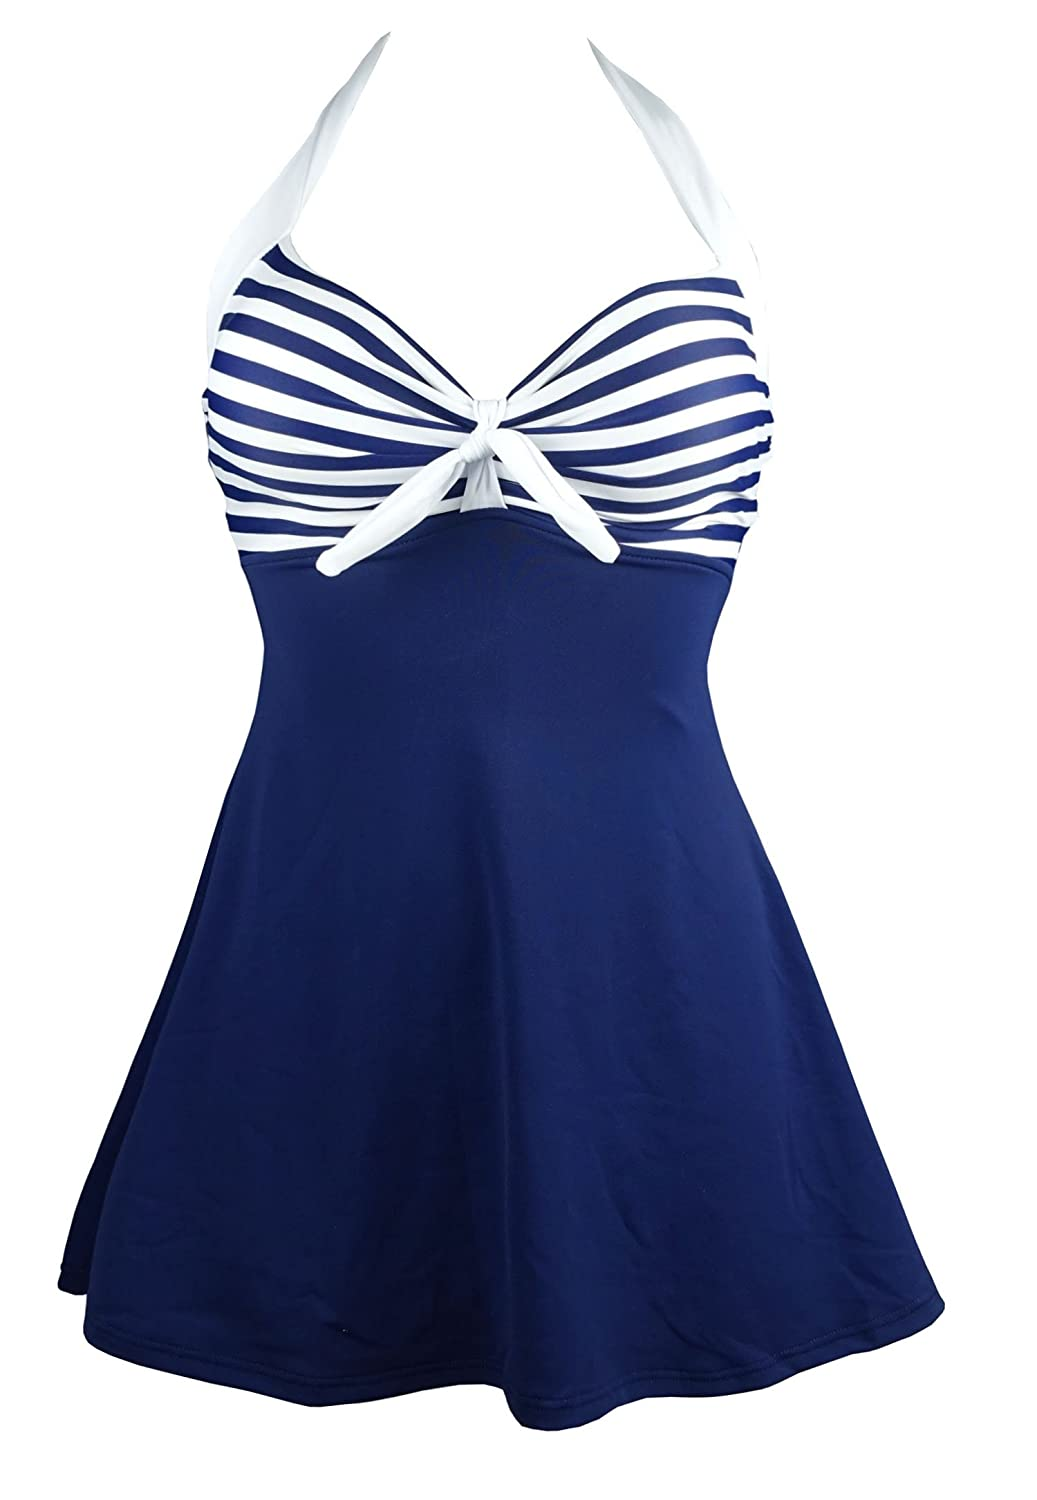 Sailor Dresses, Nautical Theme Dress, WW2 Dresses COCOSHIP Vintage Sailor Pin Up Swimsuit Retro One Piece Skirtini Cover Up Swimdress(FBA) $29.99 AT vintagedancer.com